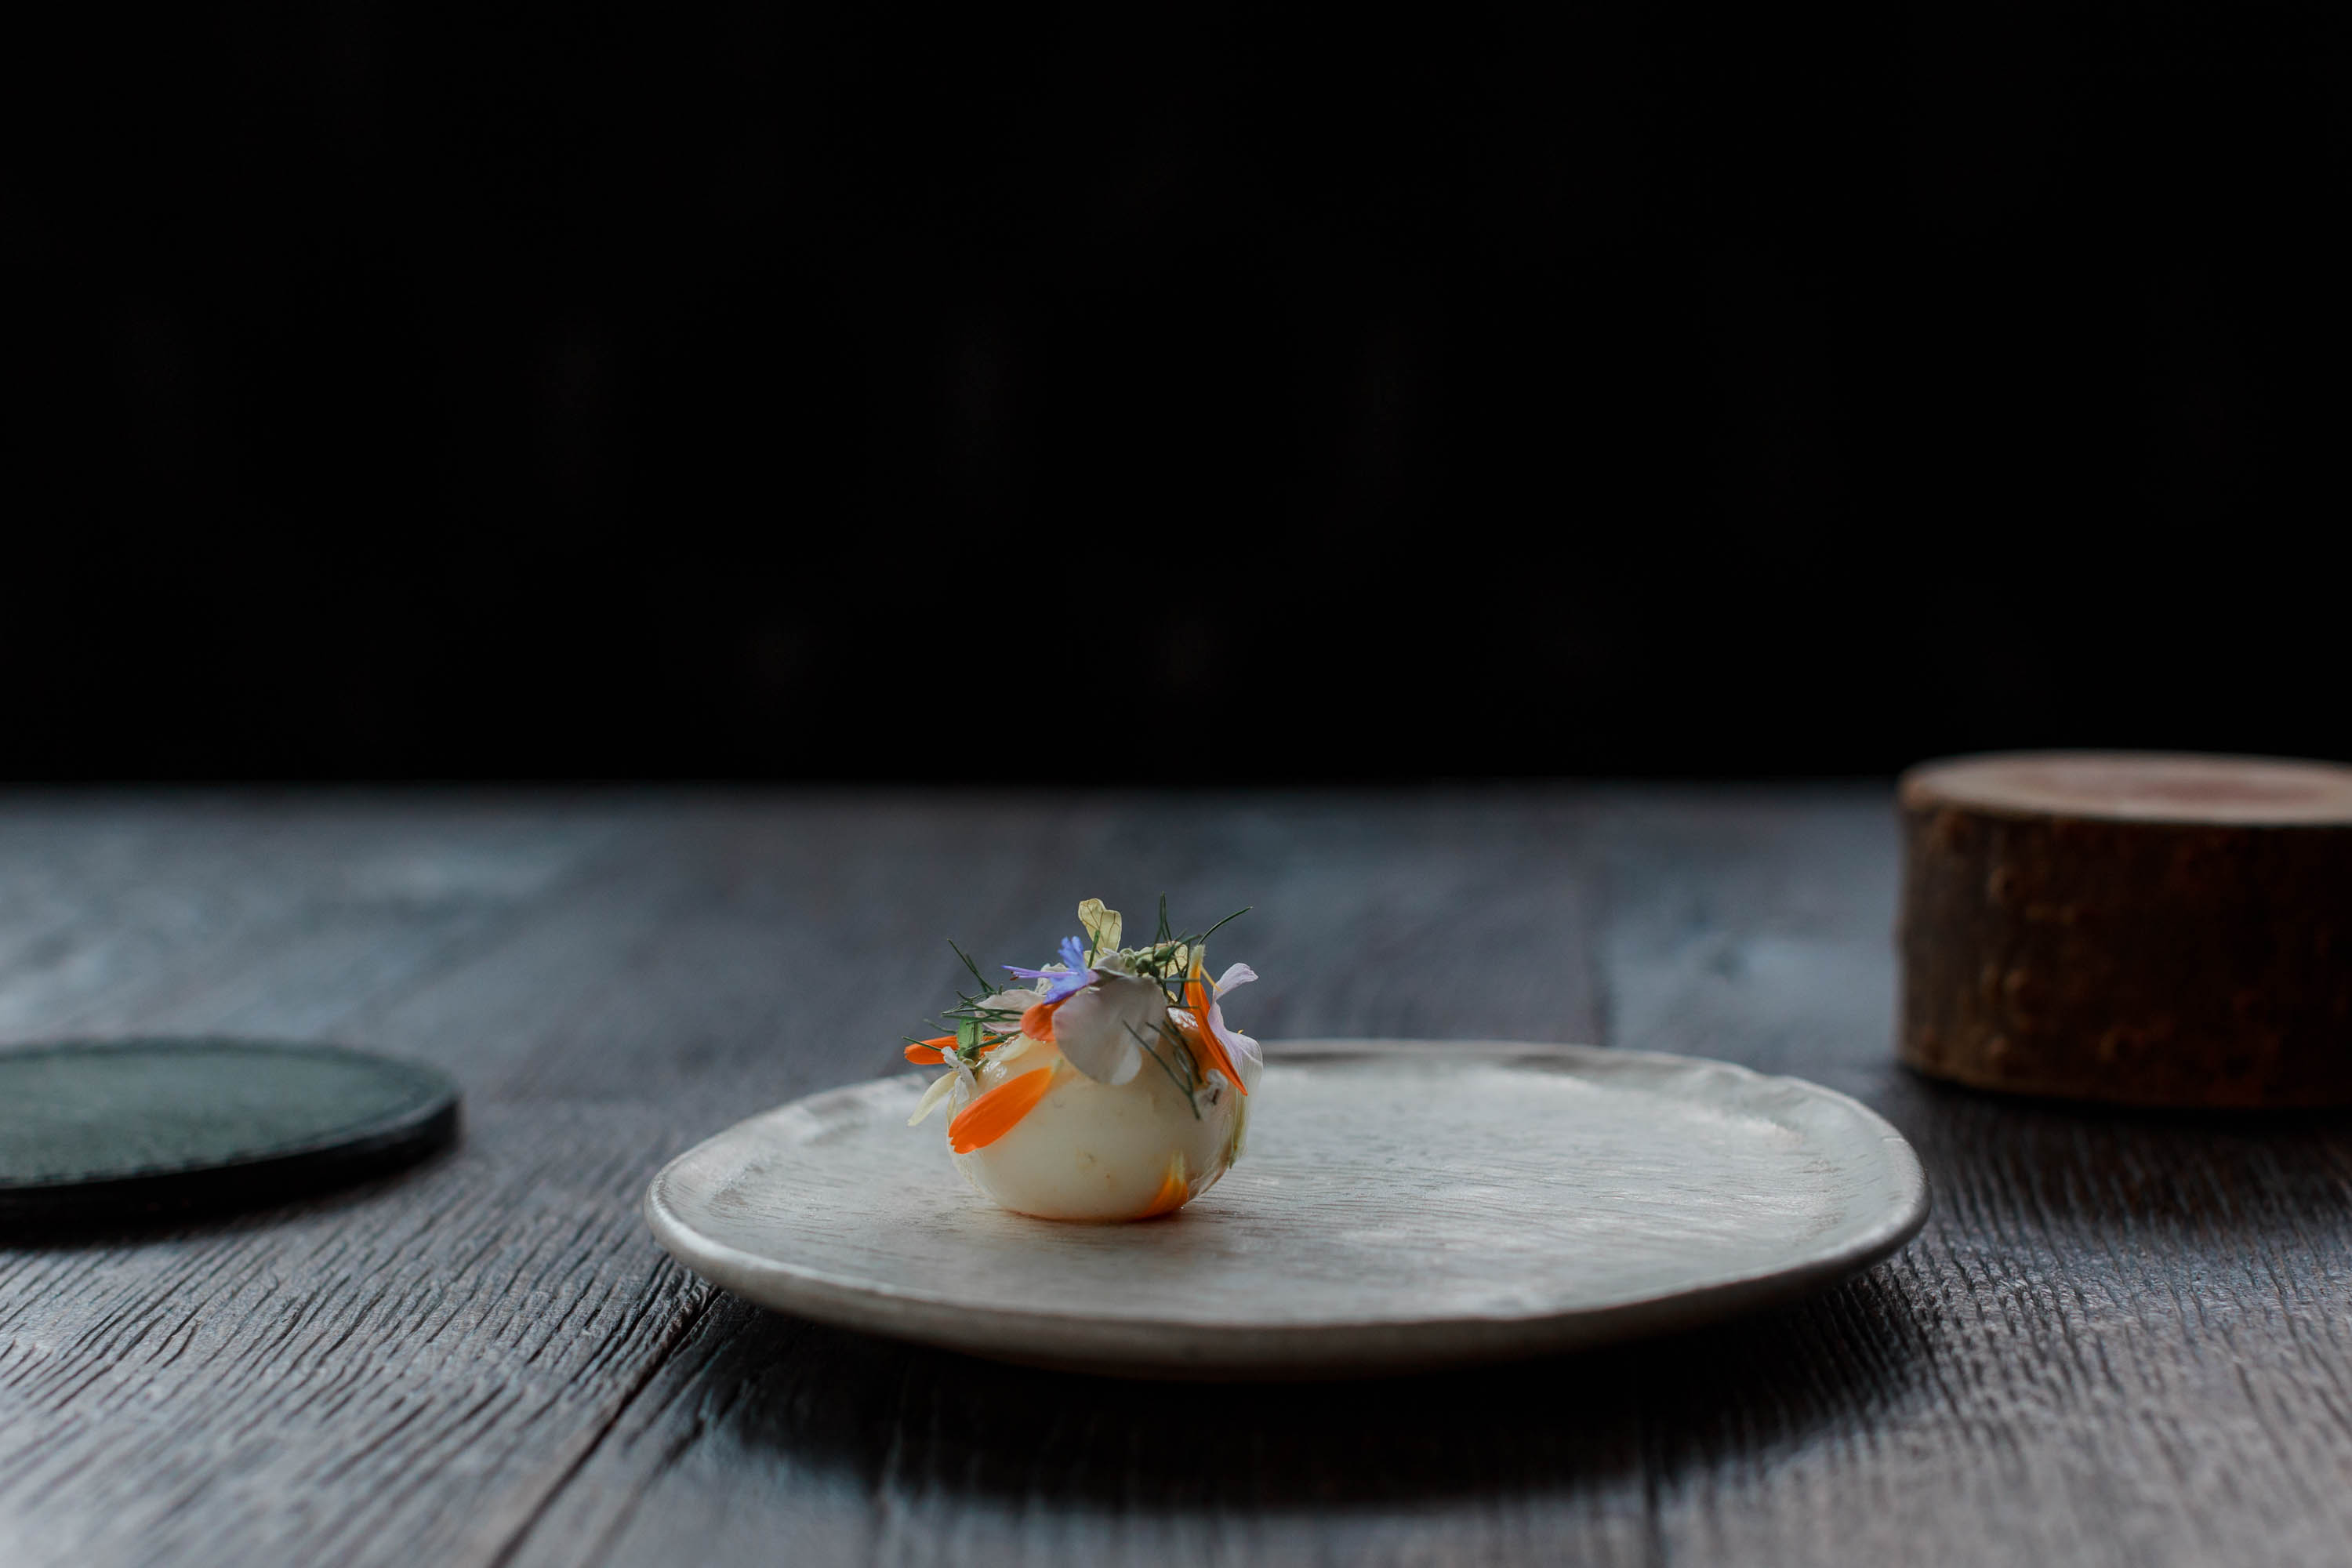 estelle-scott-pickett-melbourne-food-photography-quail-egg